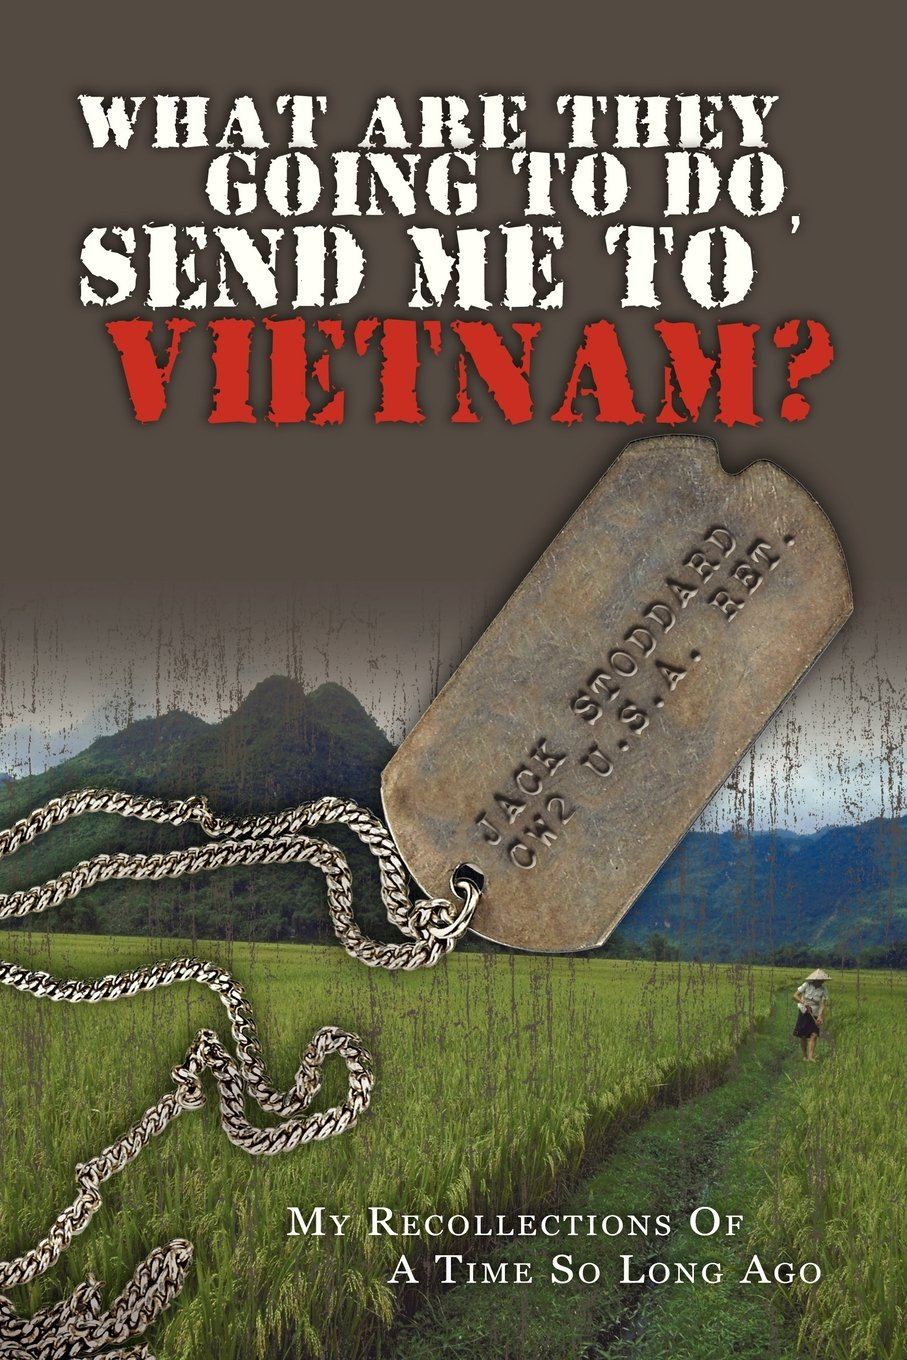 What Are They Going to Do, Send Me to Vietnam?